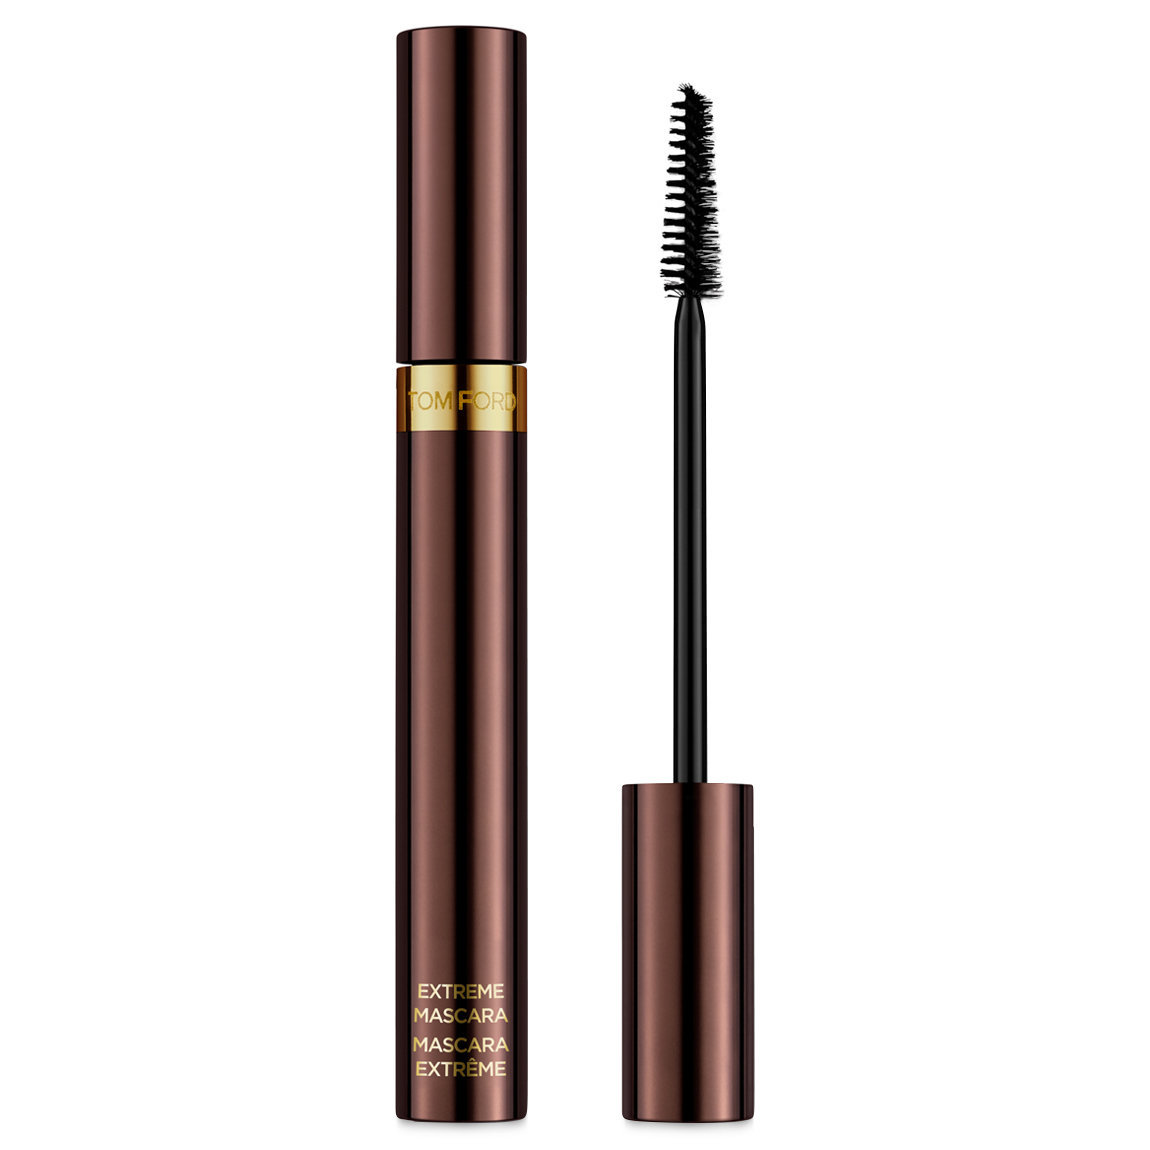 TOM FORD Extreme Mascara alternative view 1.